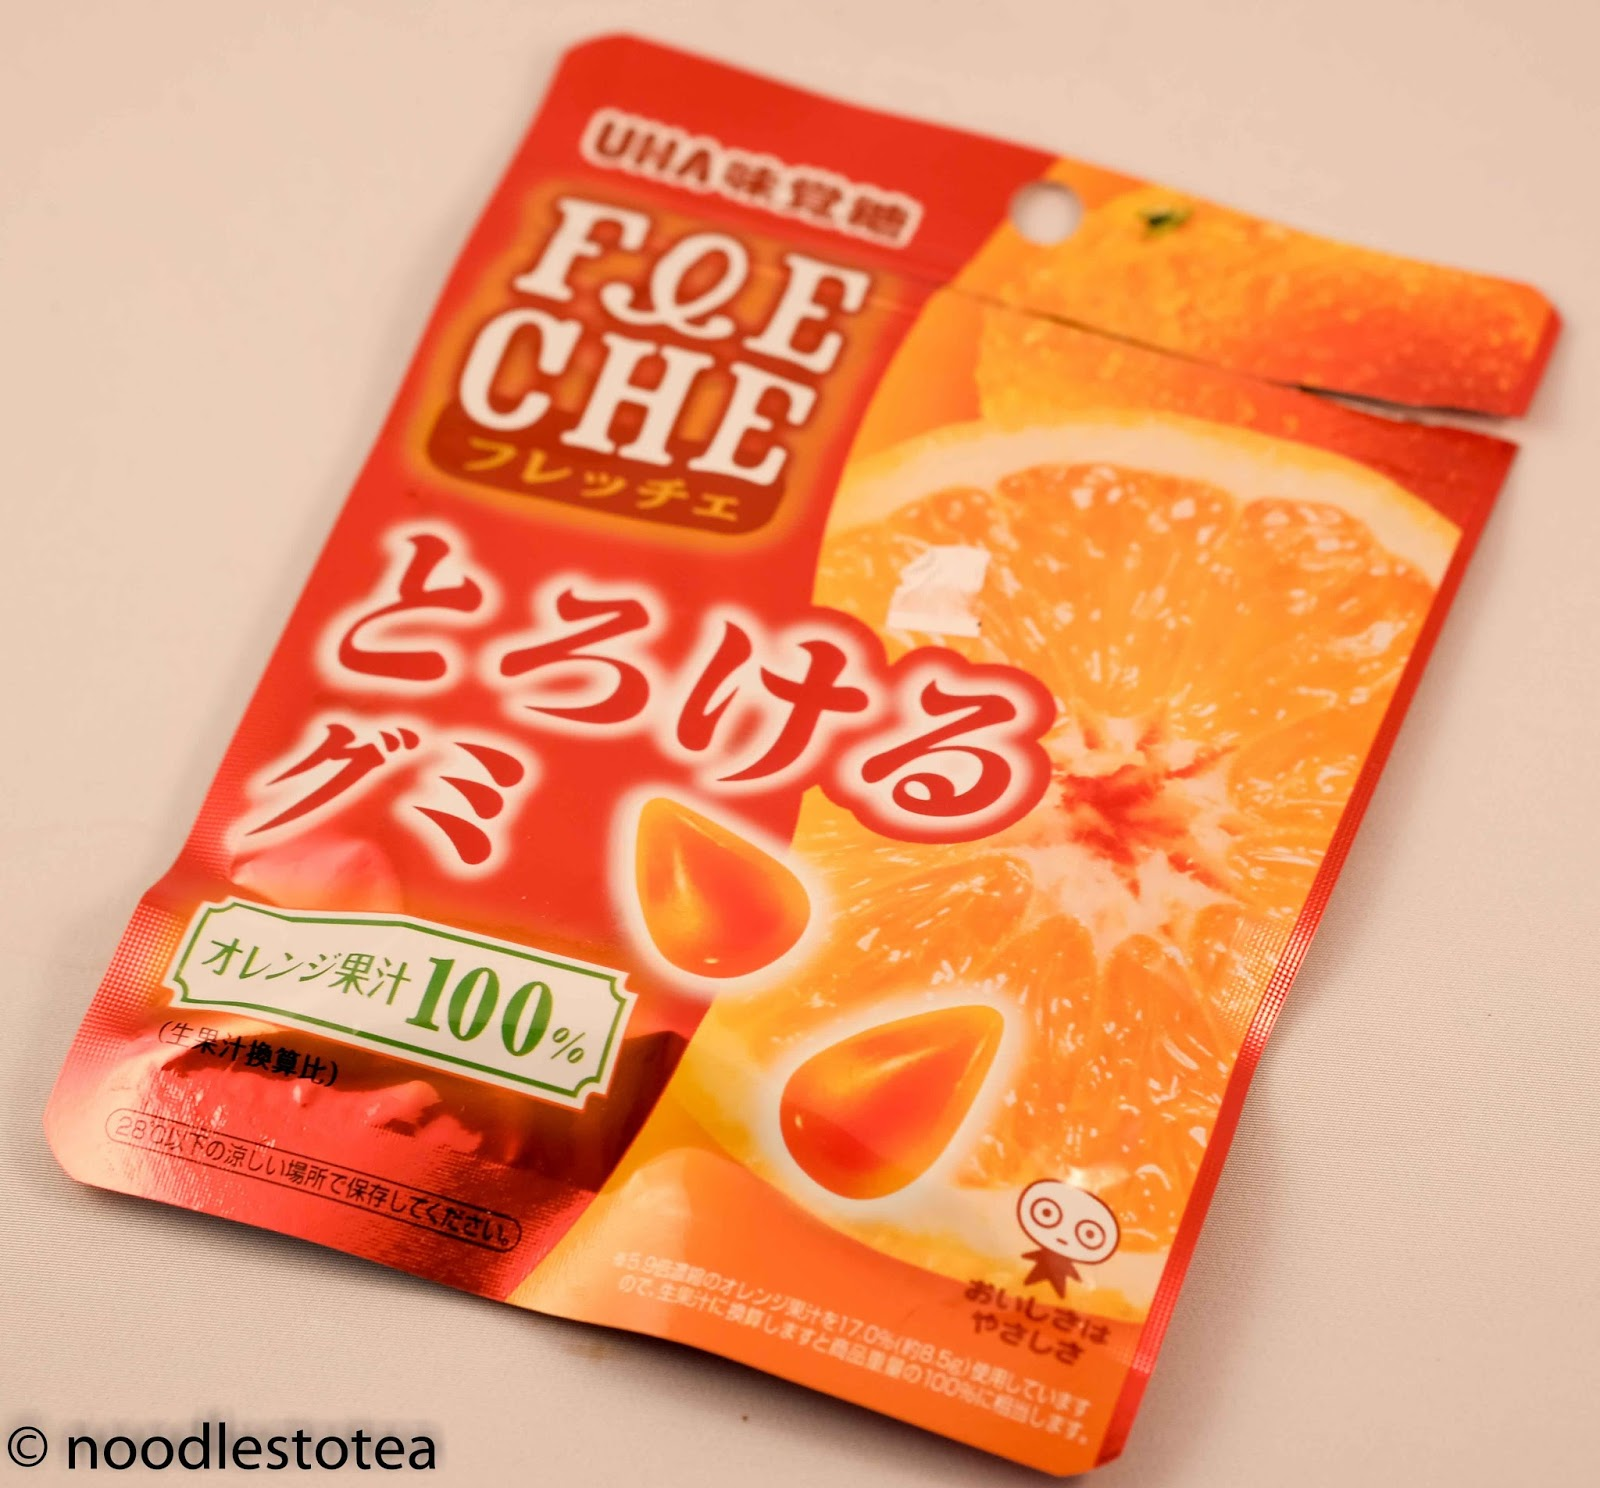 Noodles To Tea: UHA F&E CHE Orange